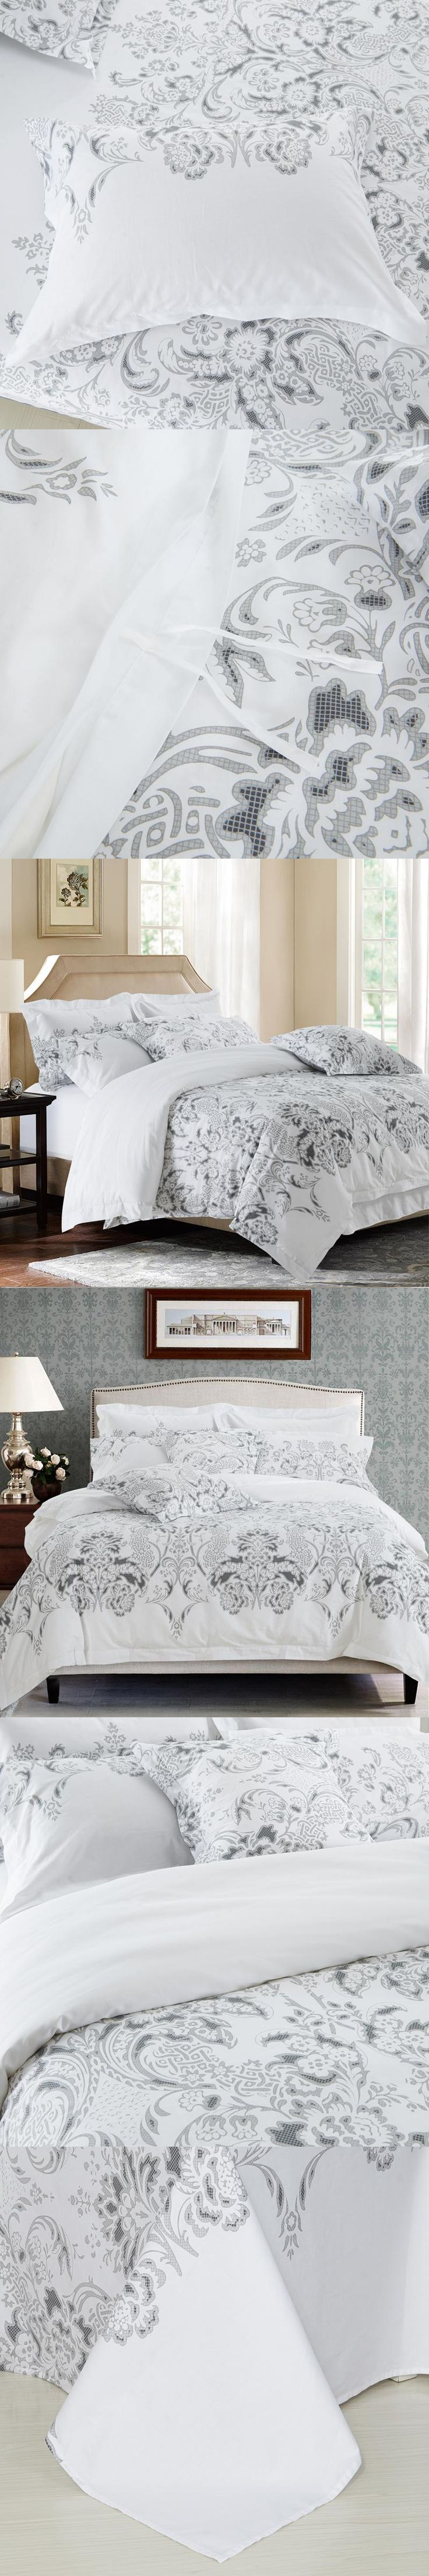 floral leaf print bed linen white color hotel bedding set twin queen king size bedclothes modern